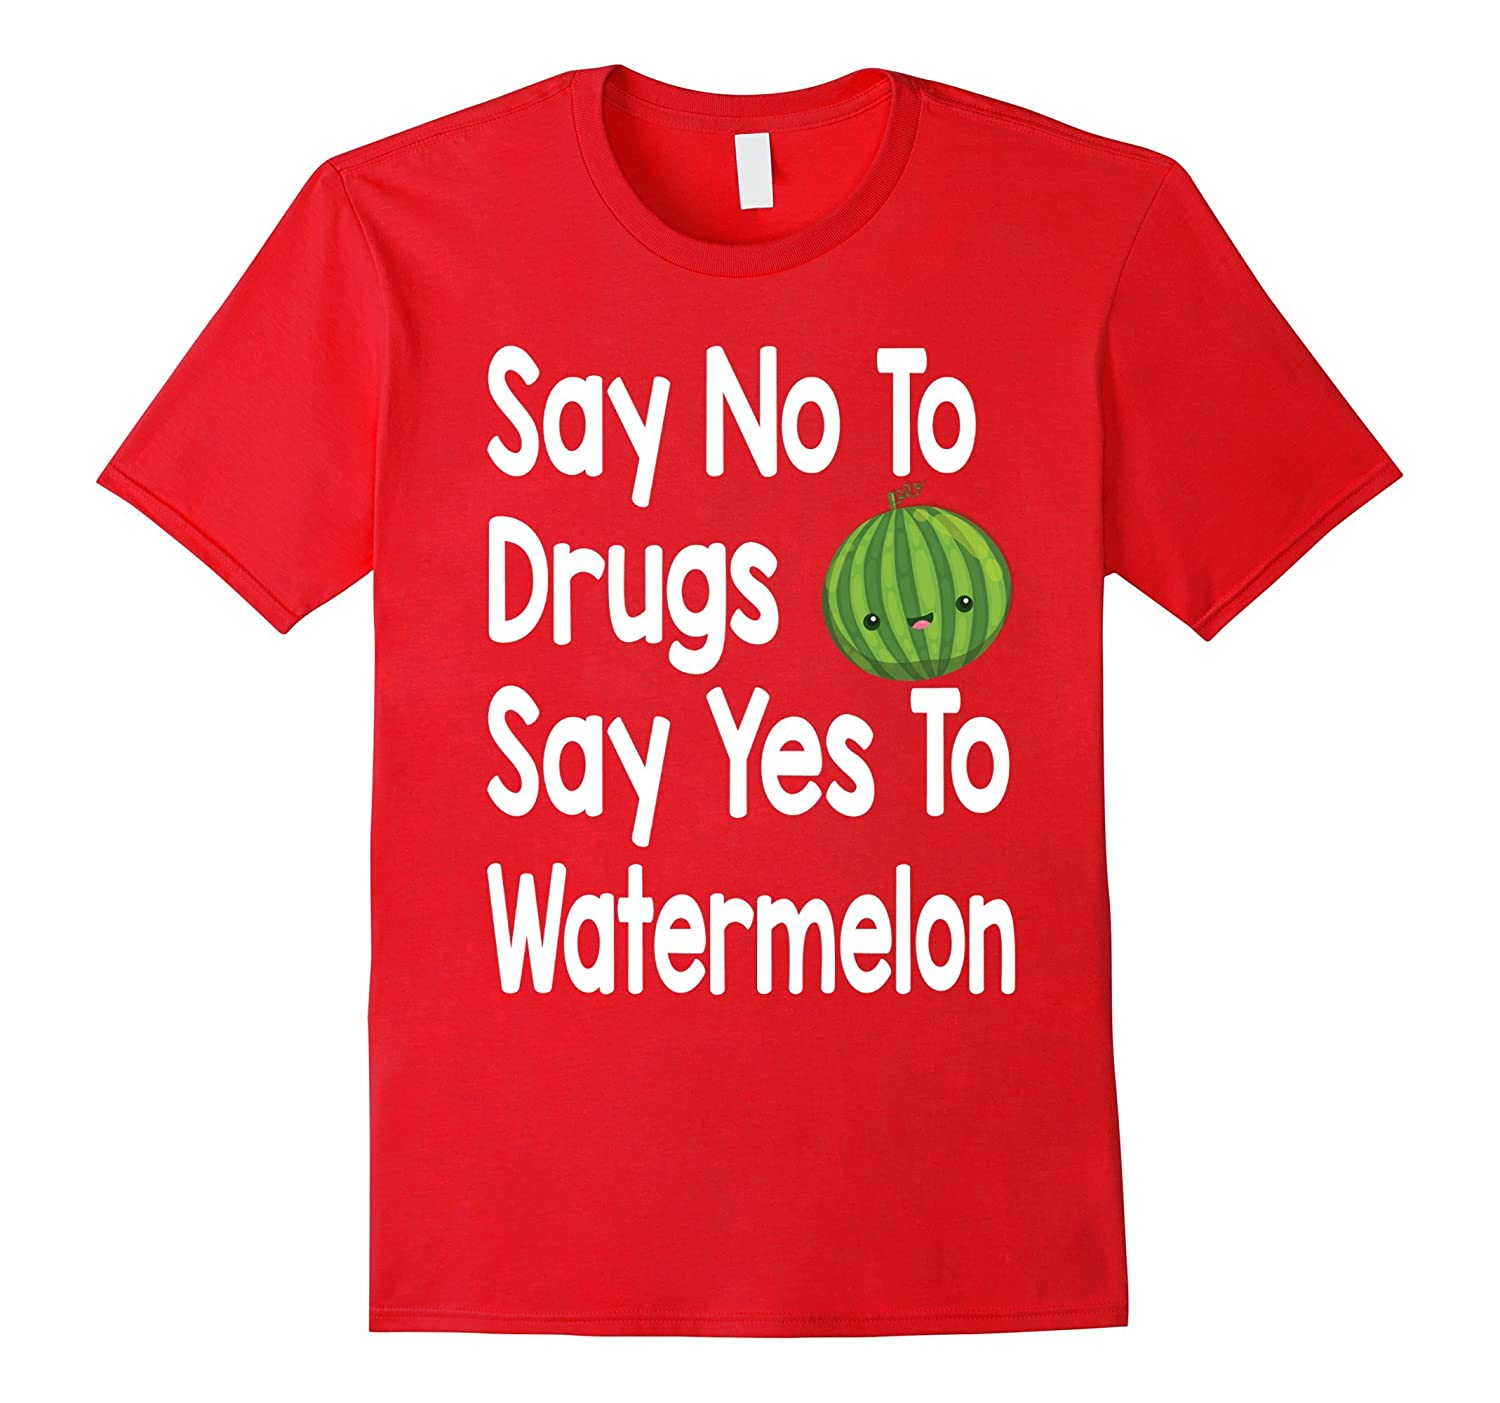 Say No To Drugs Say Yes To Watermelon Funny Anti Drug Shirt-FL